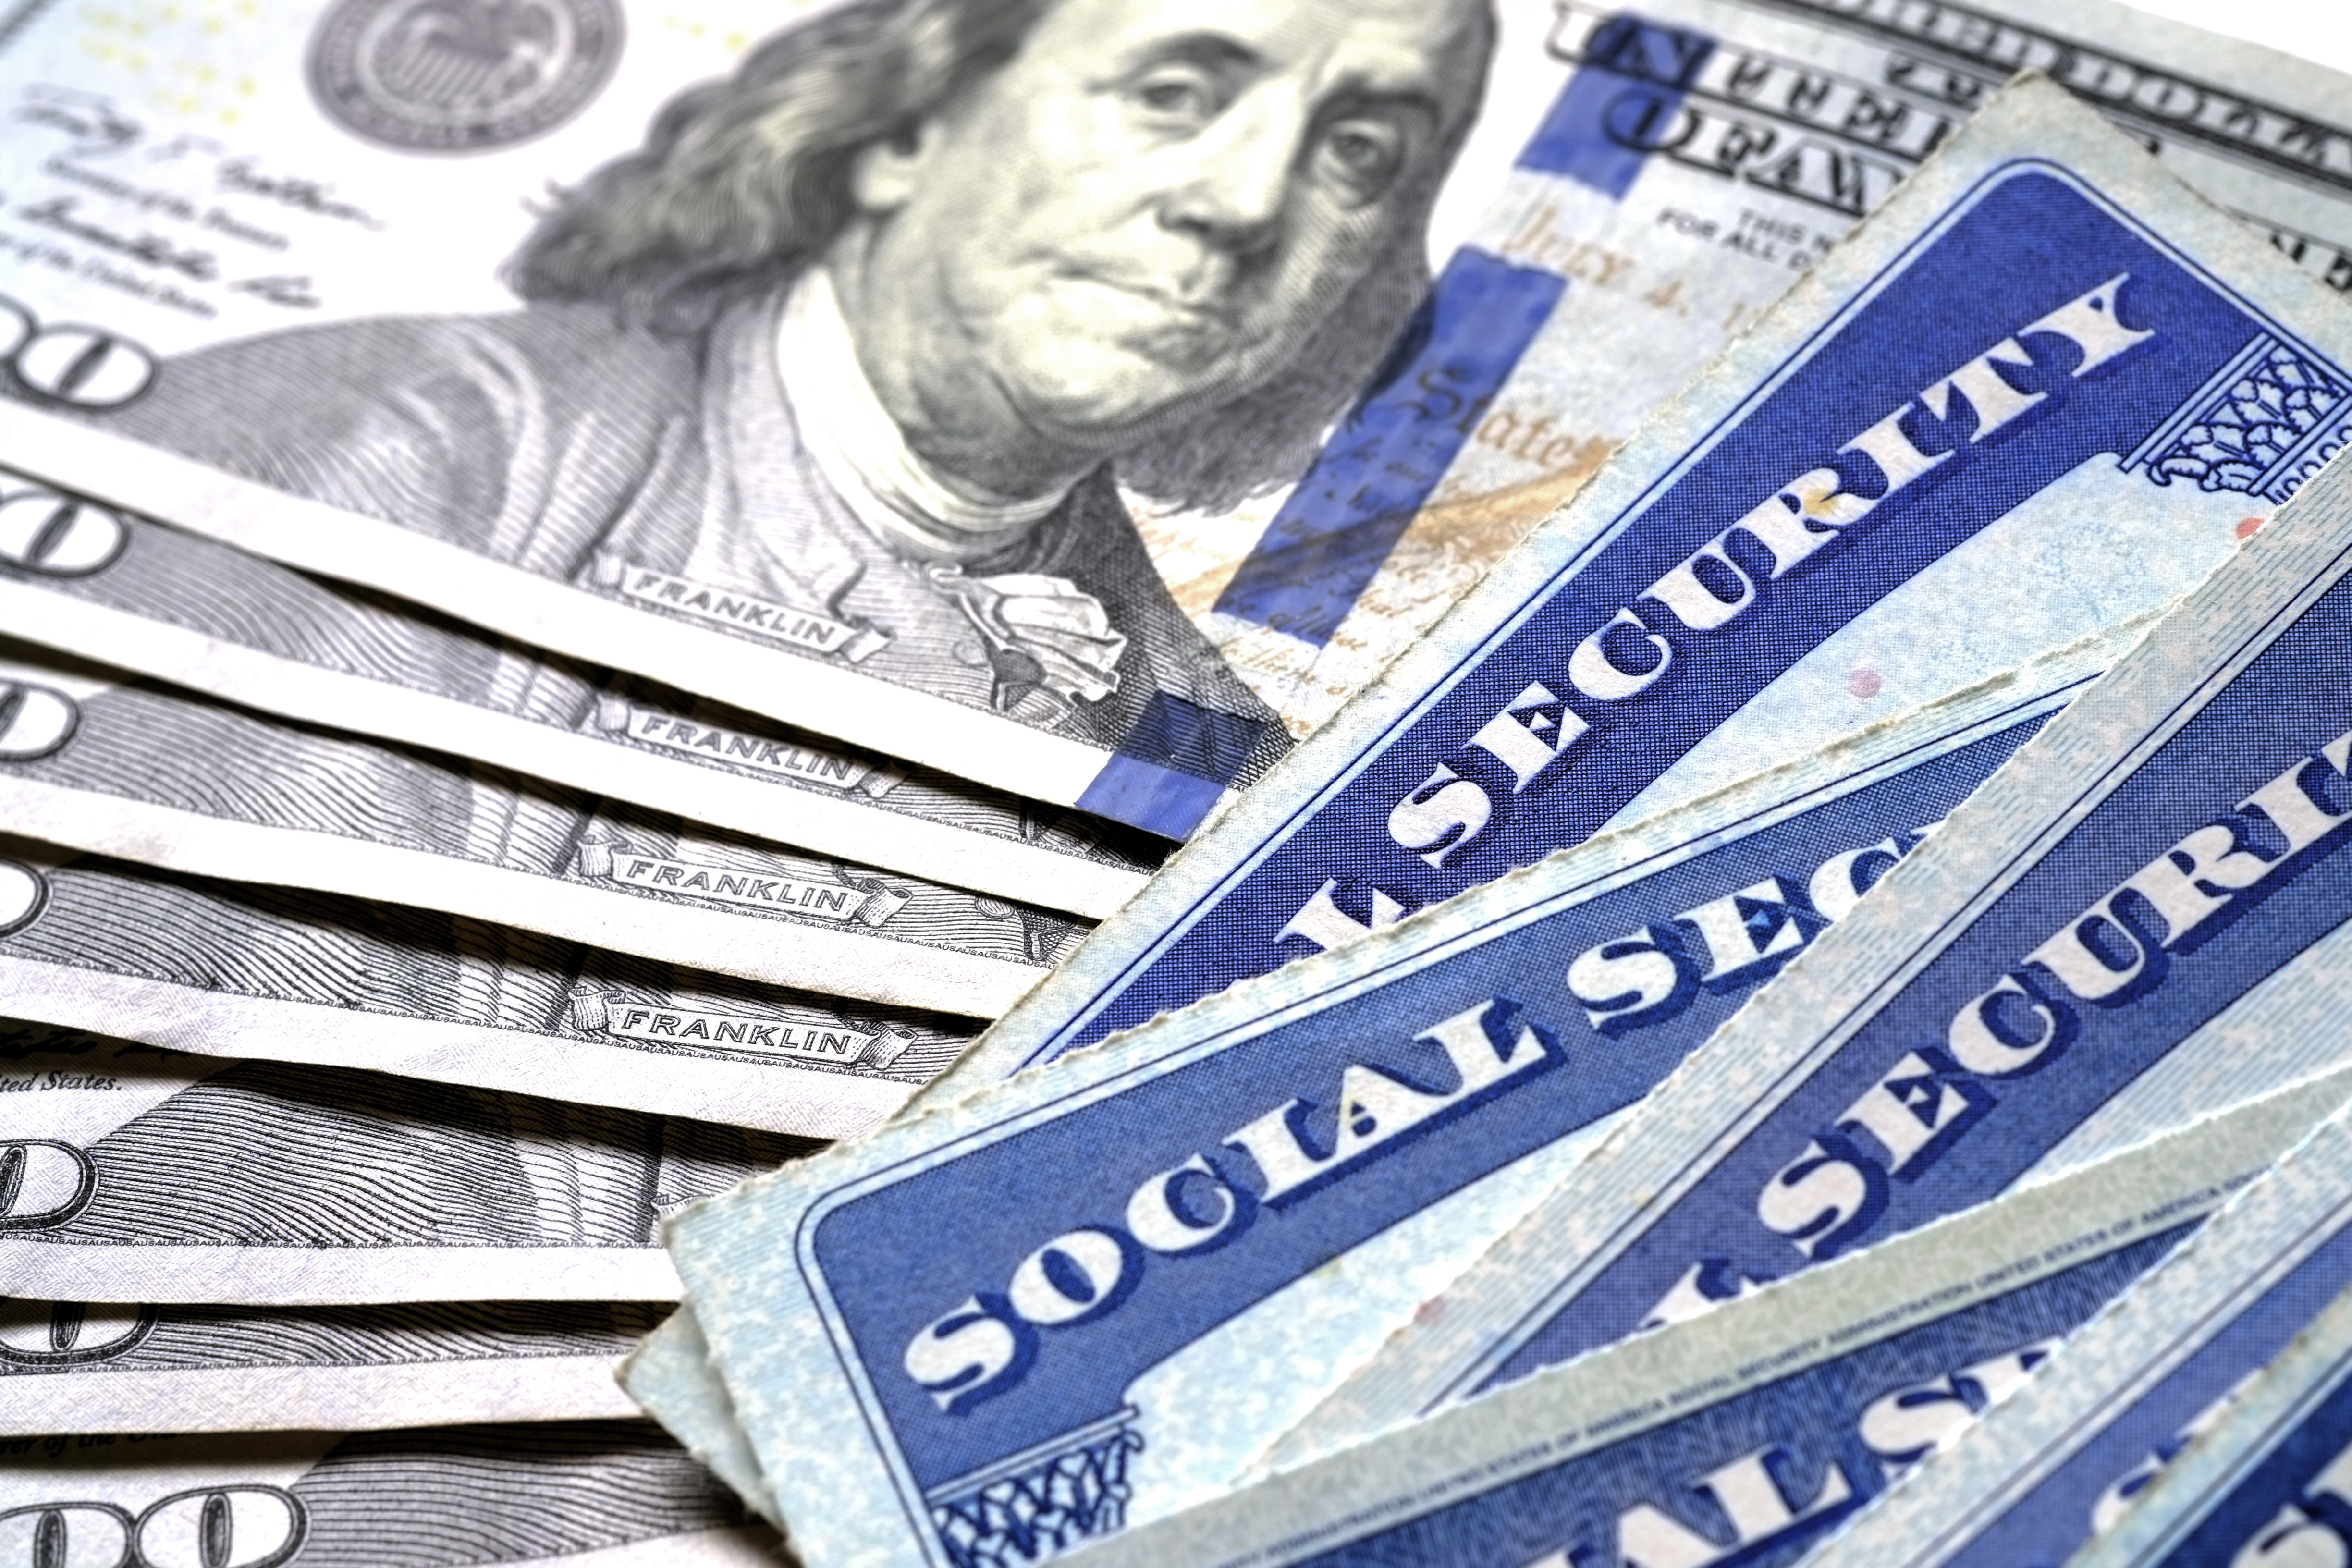 Pictured are social security cards and money. SHUTTERSTOCK/ Lane V. Erickson